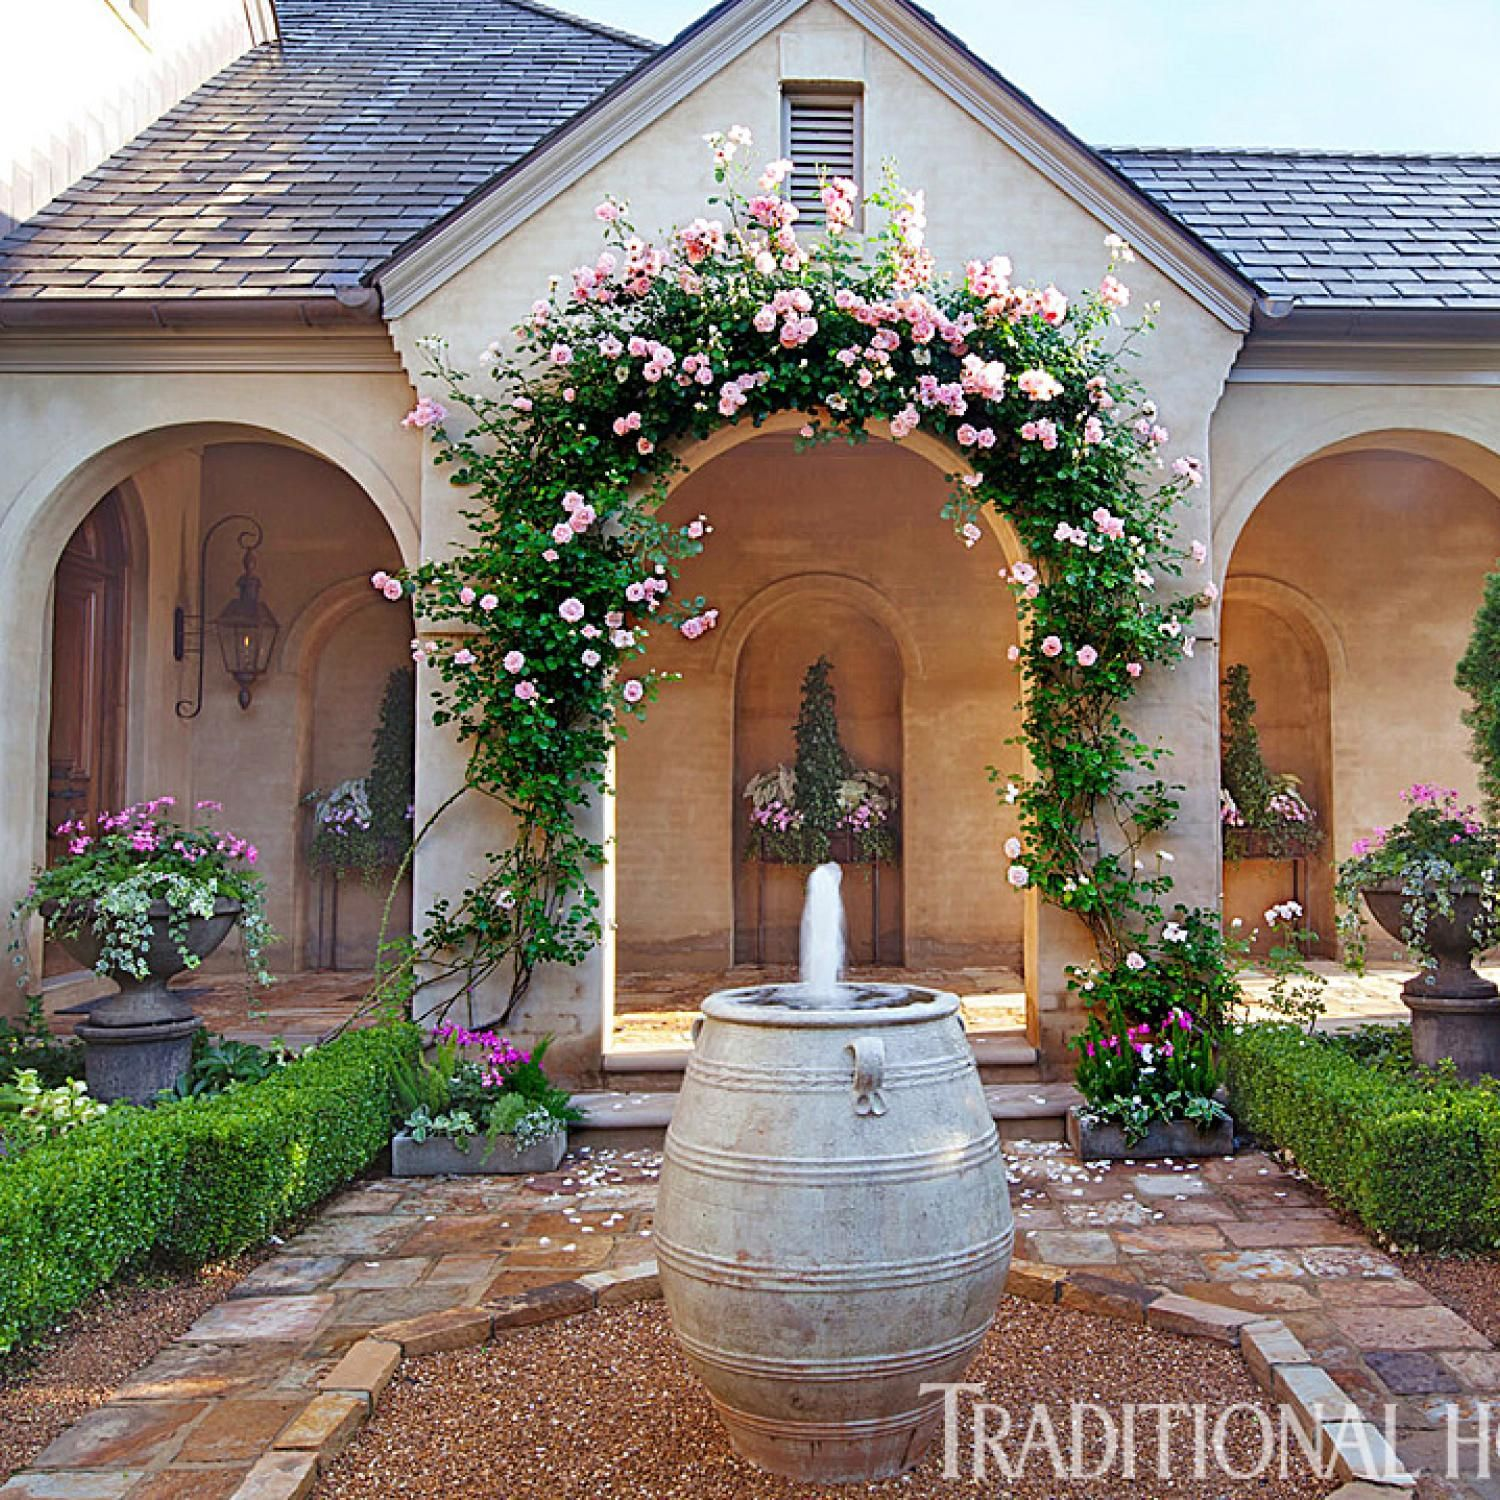 Carns Garden At The Home S Entrance A Loggia Opens Onto